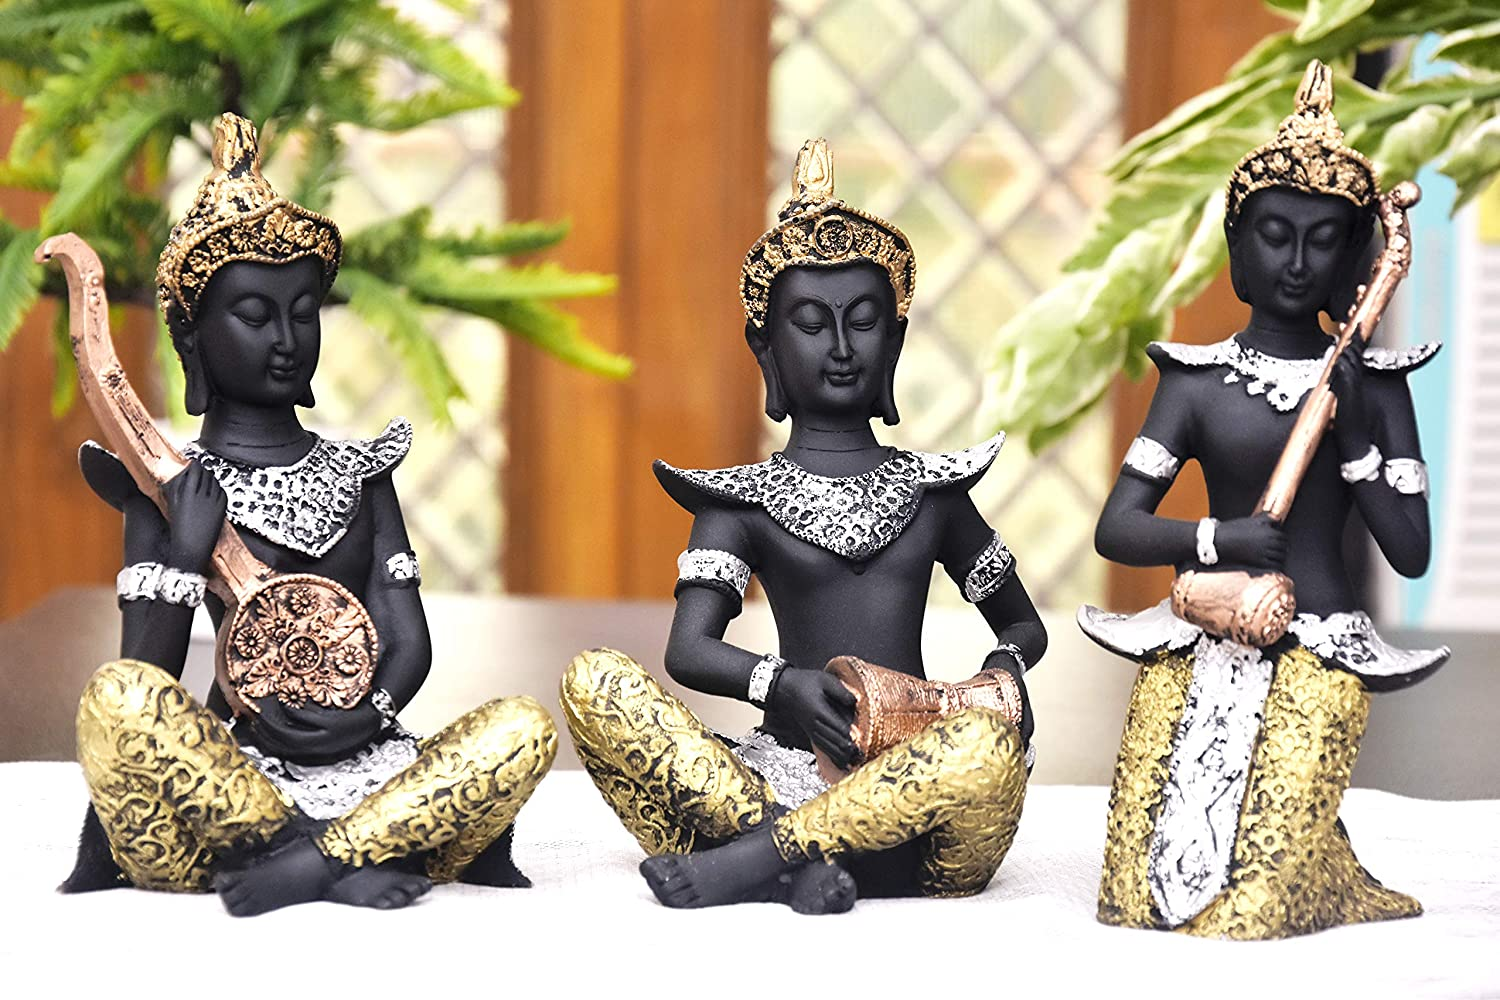 Antique Lord Buddha Statue Set Playing Musical Instruments